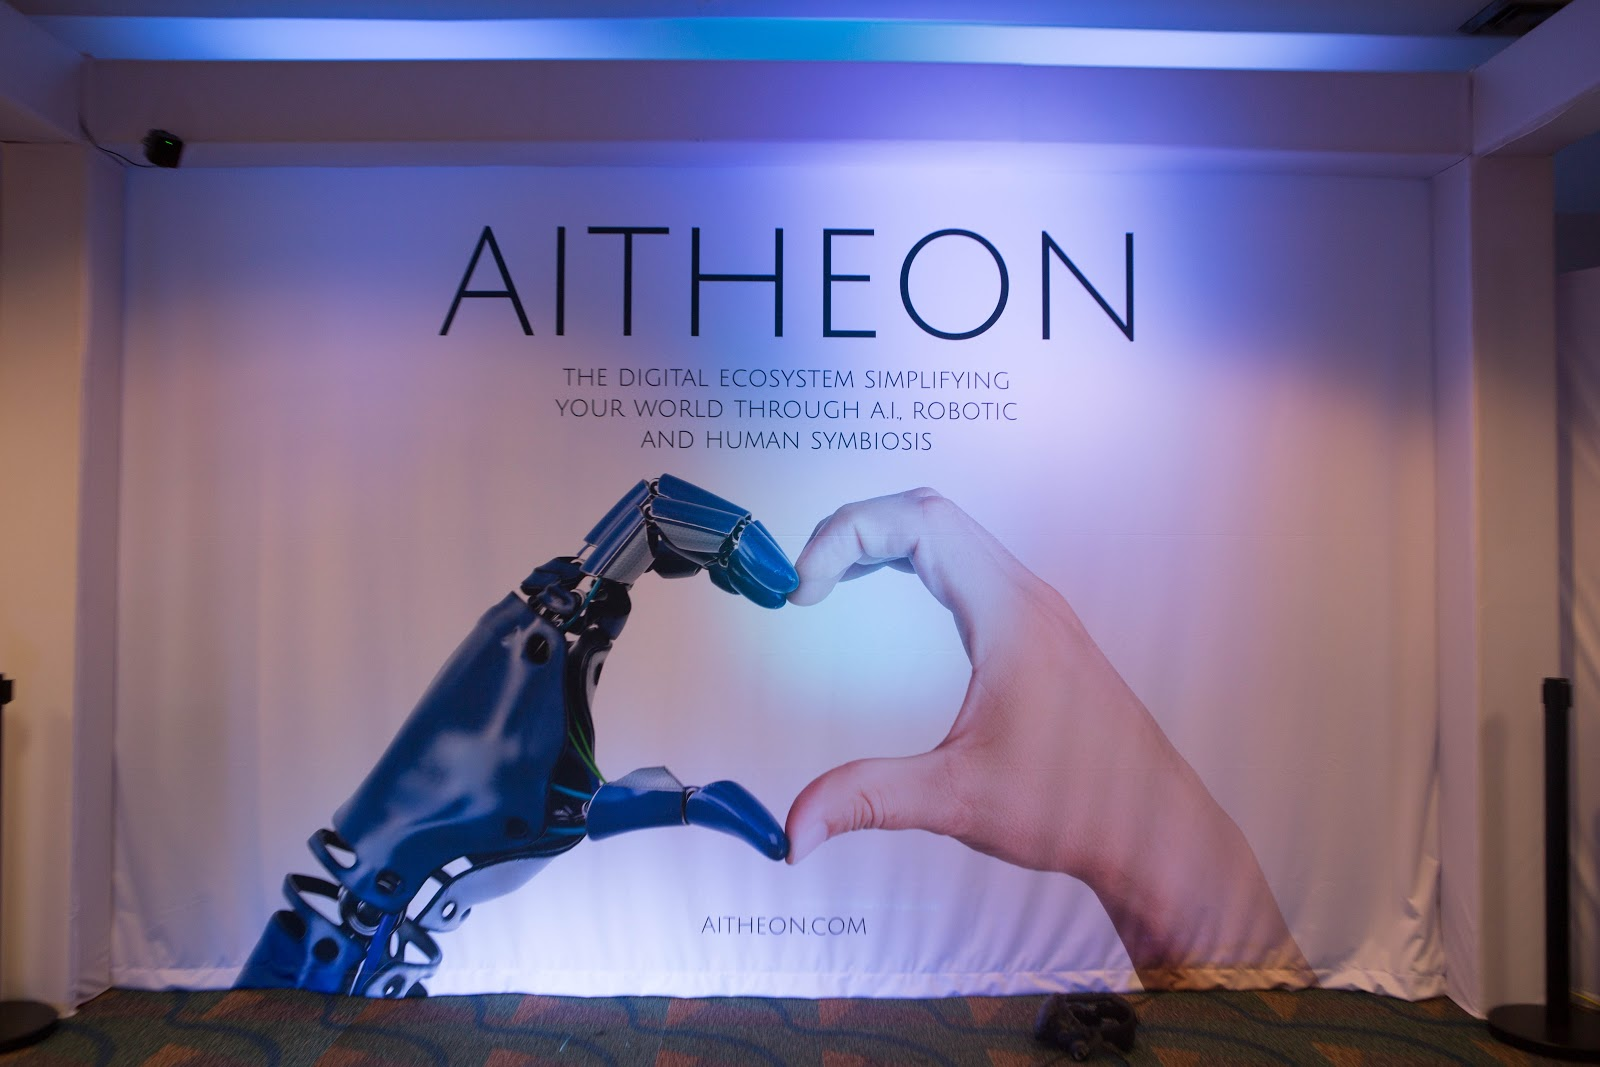 Andrew Archer's Aitheon Project